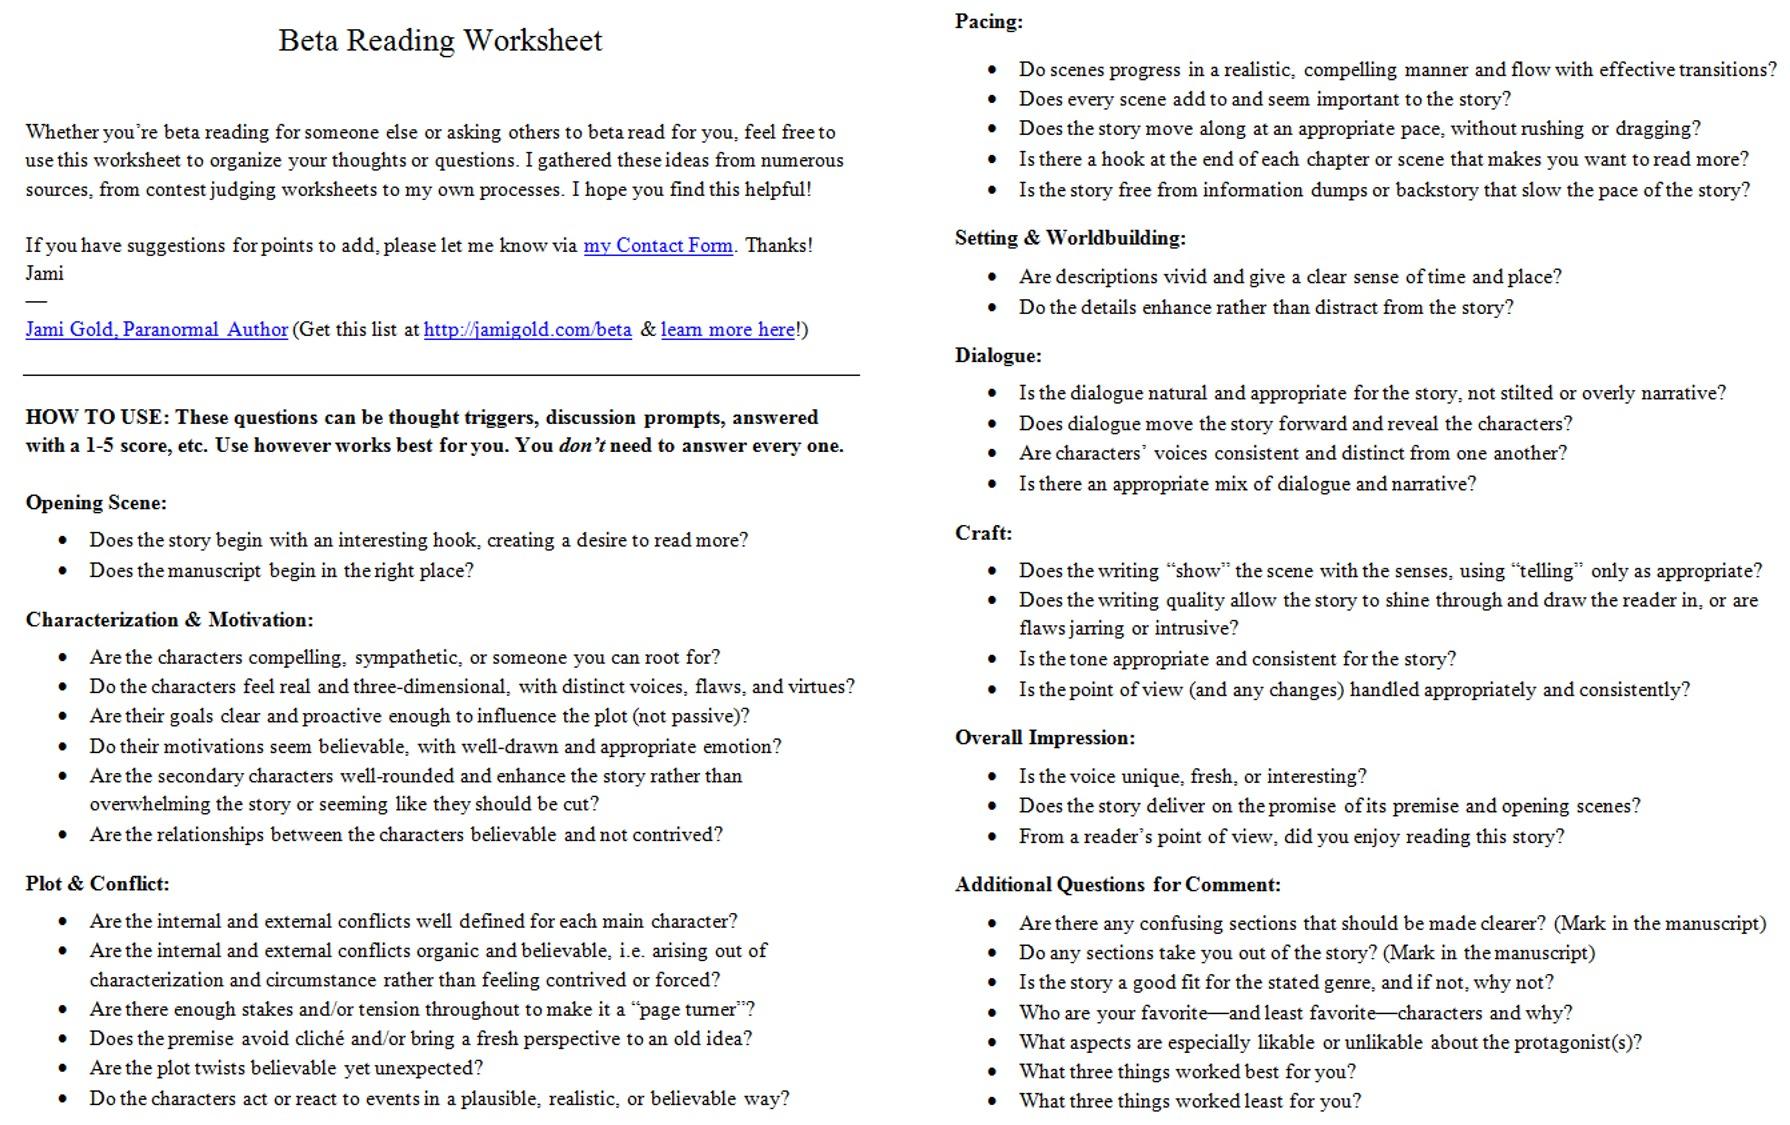 Proatmealus  Pleasing Worksheets For Writers  Jami Gold Paranormal Author With Glamorous Screen Shot Of The Twopage Beta Reading Worksheet With Archaic Mixing Colors Worksheet Also Enlisted Promotion Point Worksheet In Addition Comma Usage Worksheets And Surface Area Prisms Worksheet As Well As Spelling And Vocabulary Worksheets Additionally R Blends Worksheet From Jamigoldcom With Proatmealus  Glamorous Worksheets For Writers  Jami Gold Paranormal Author With Archaic Screen Shot Of The Twopage Beta Reading Worksheet And Pleasing Mixing Colors Worksheet Also Enlisted Promotion Point Worksheet In Addition Comma Usage Worksheets From Jamigoldcom